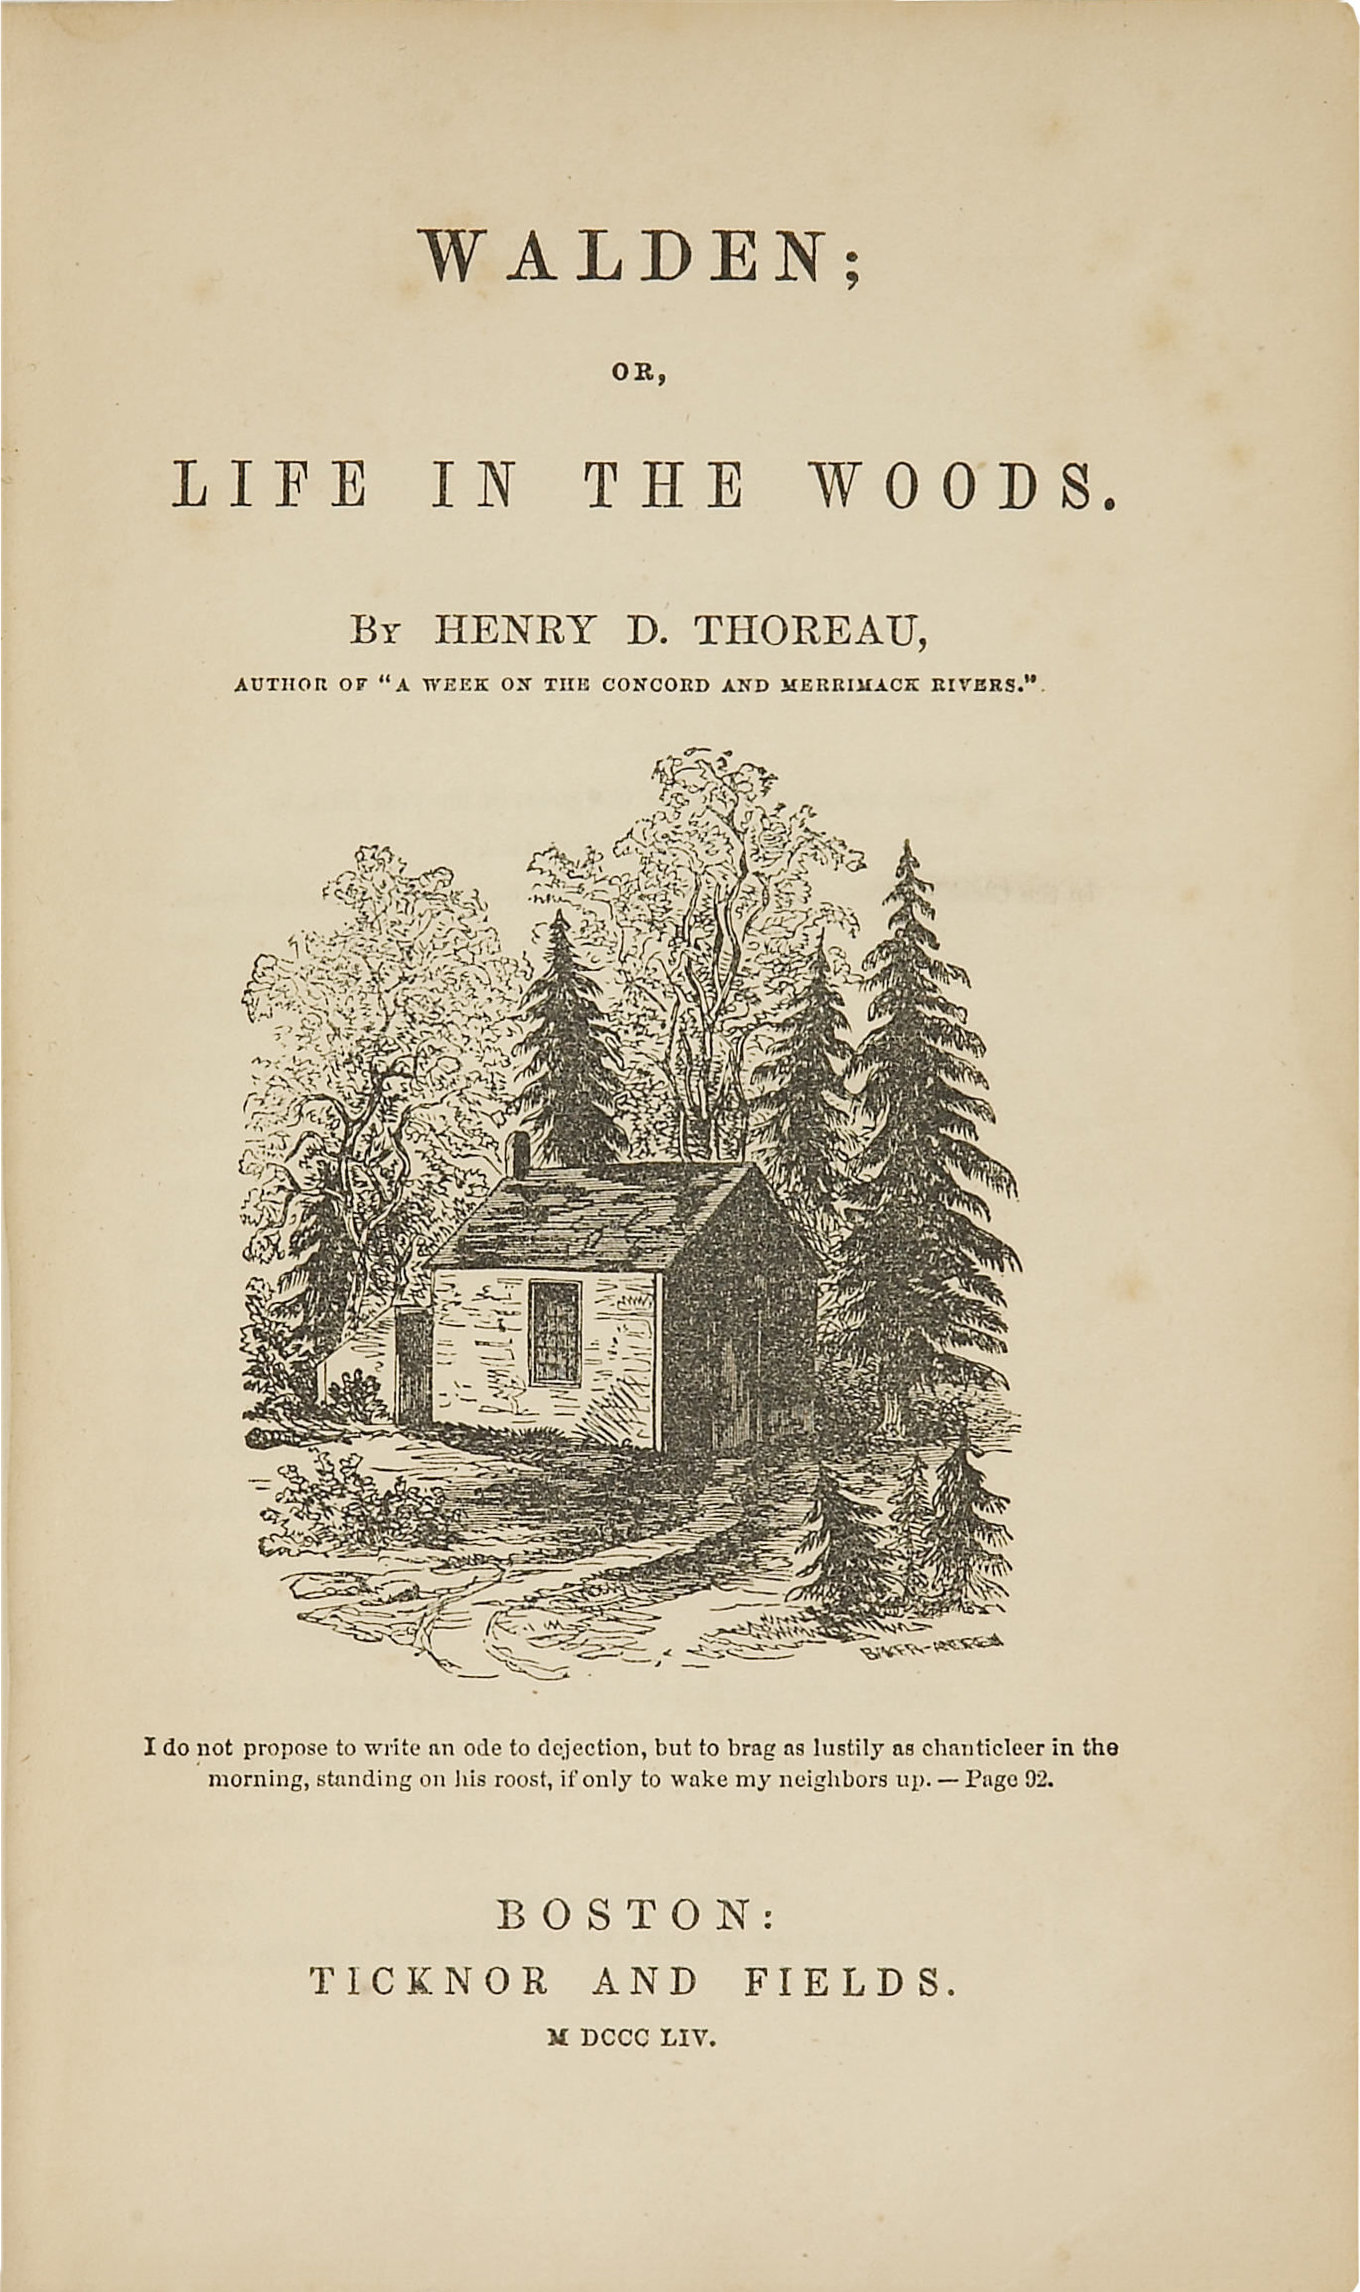 File:Walden Thoreau.jpg